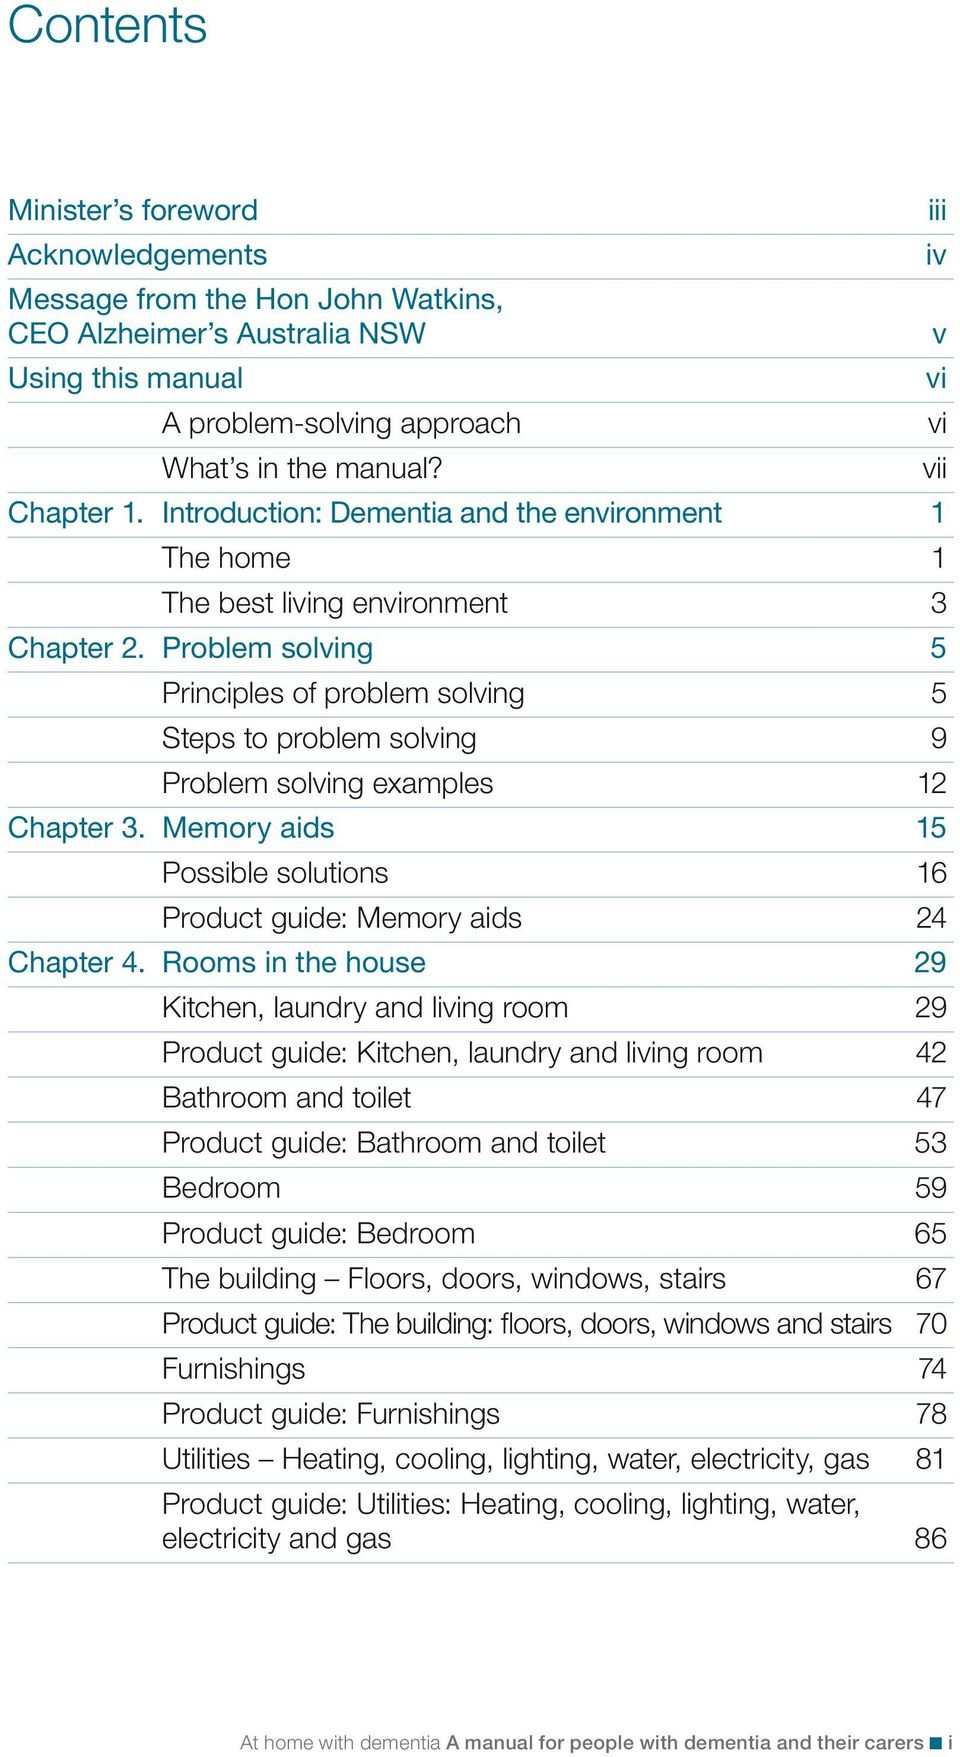 Problem solving 5 Principles of problem solving 5 Steps to problem solving 9 Problem solving examples 12 Chapter 3. Memory aids 15 Possible solutions 16 Product guide: Memory aids 24 Chapter 4.